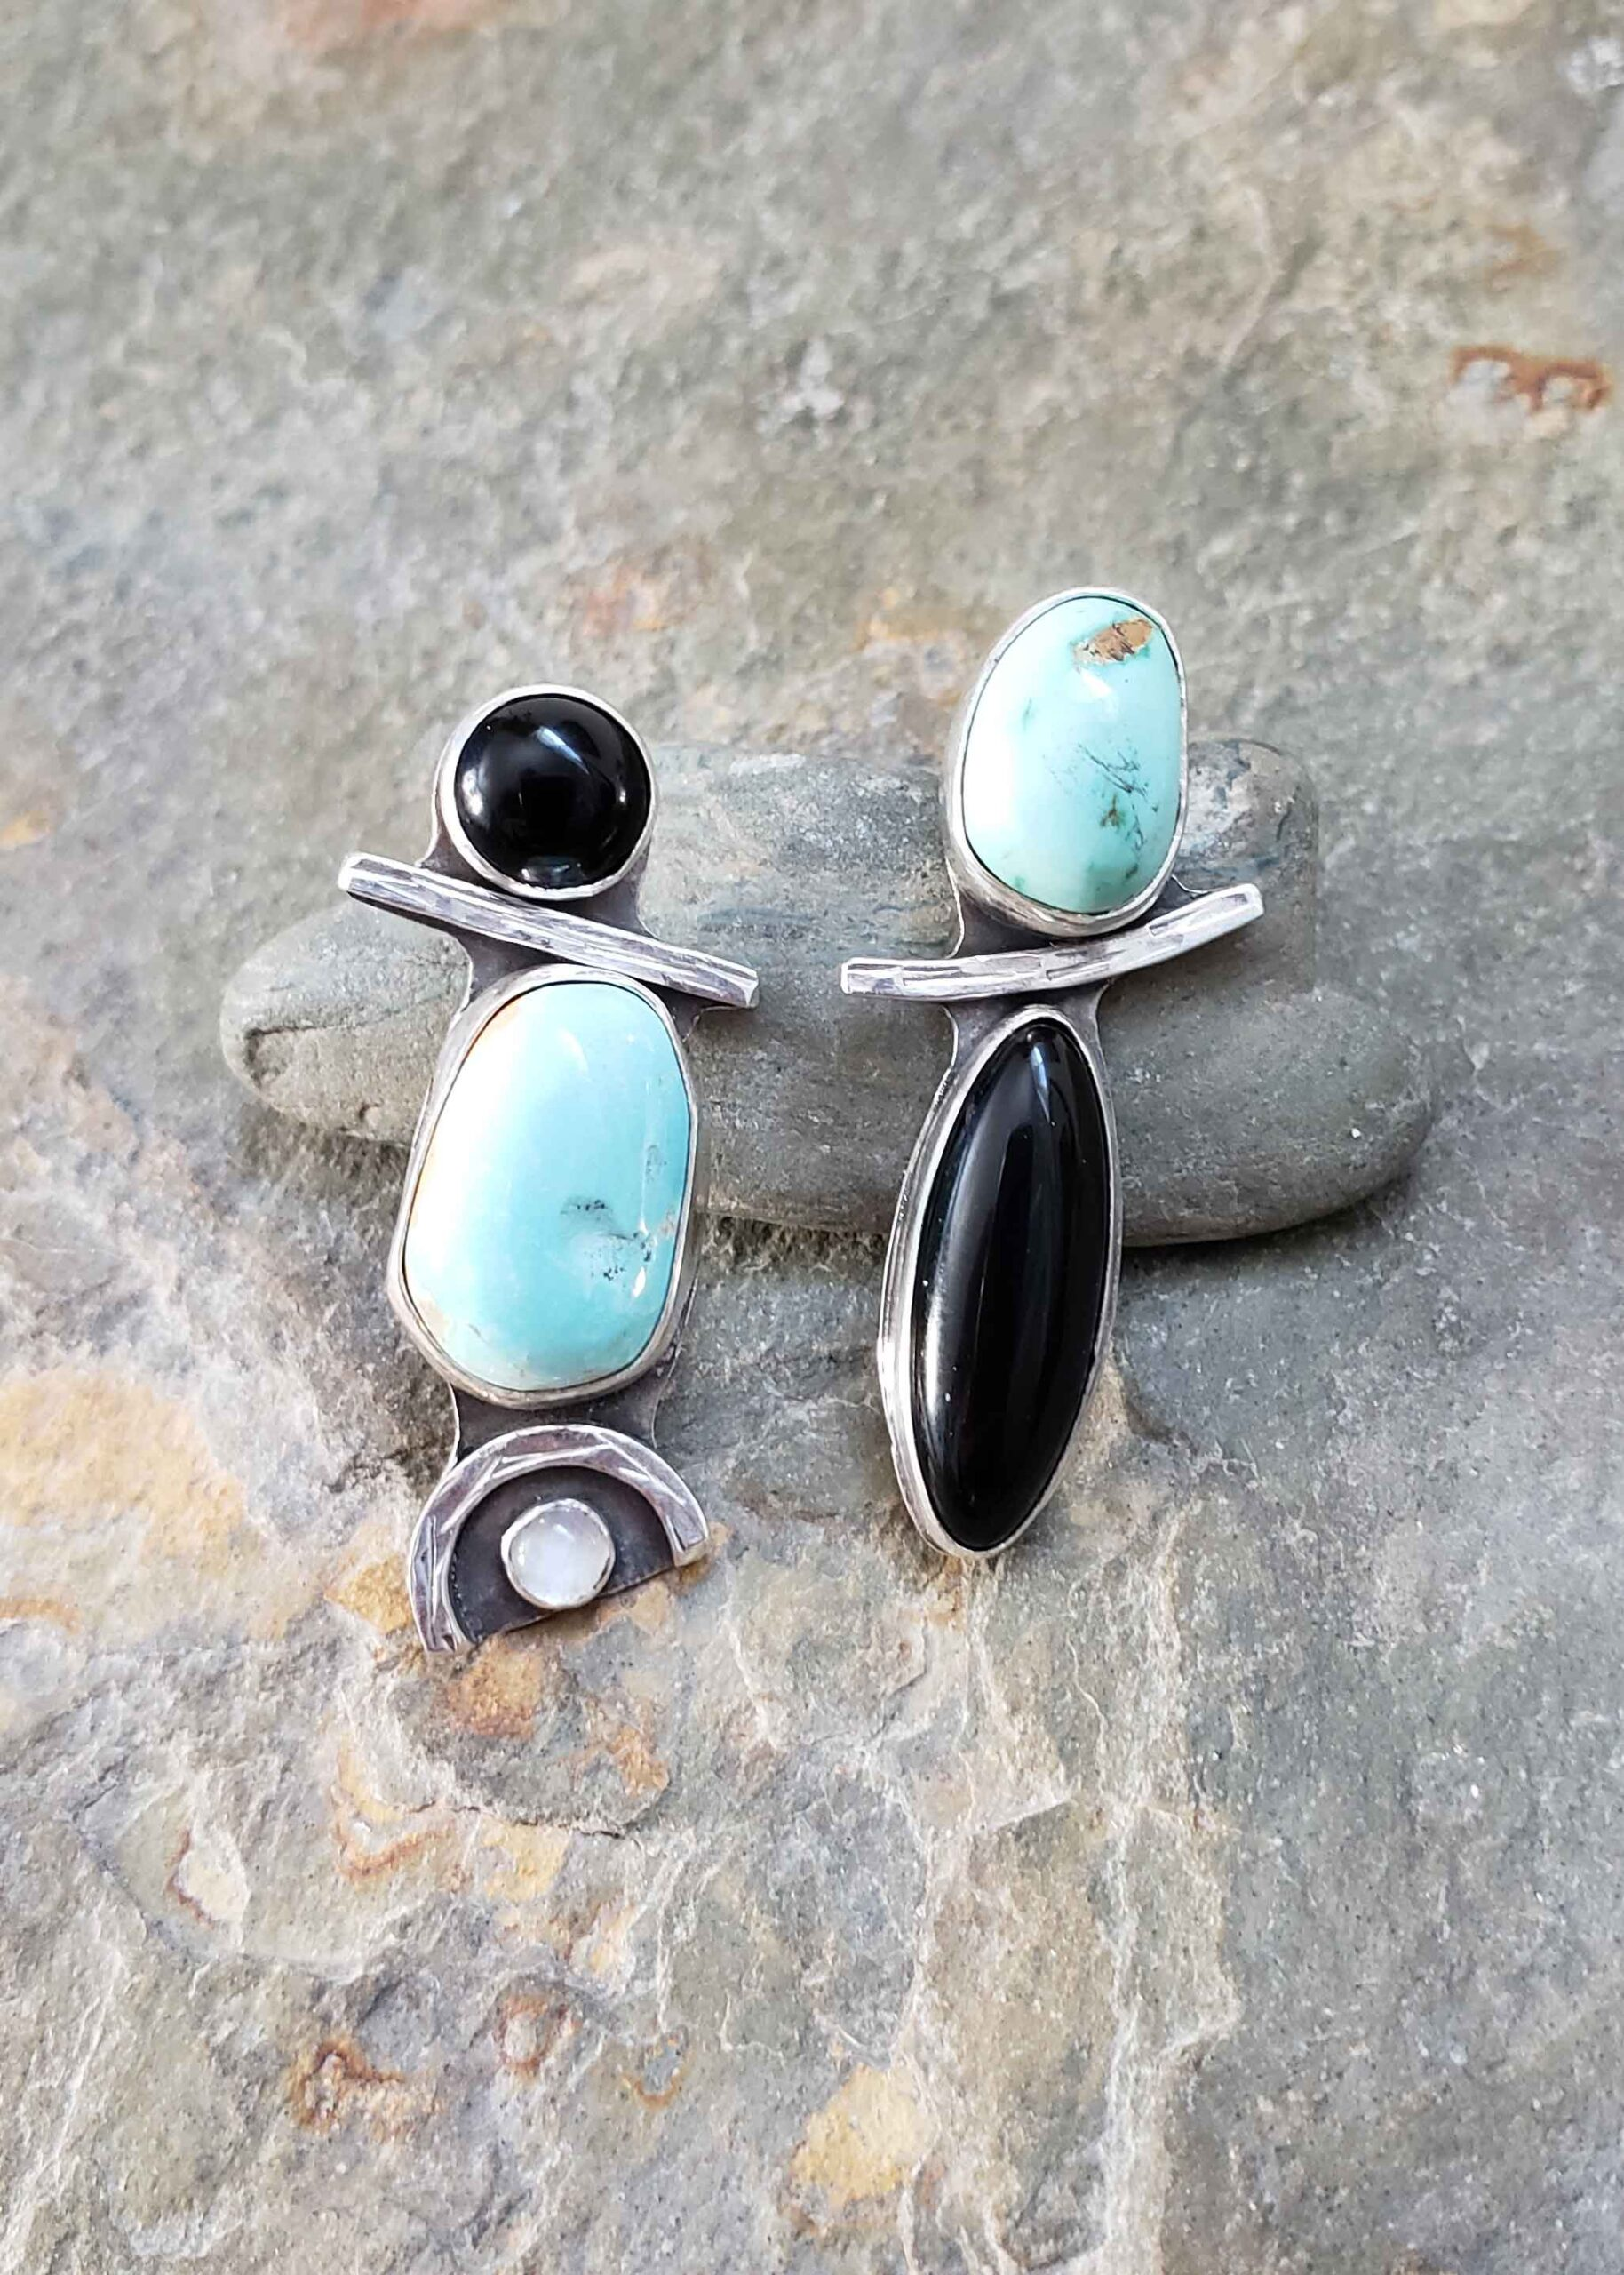 Turquoise, black and white silver asymmetrical post earrings by Dona Miller.